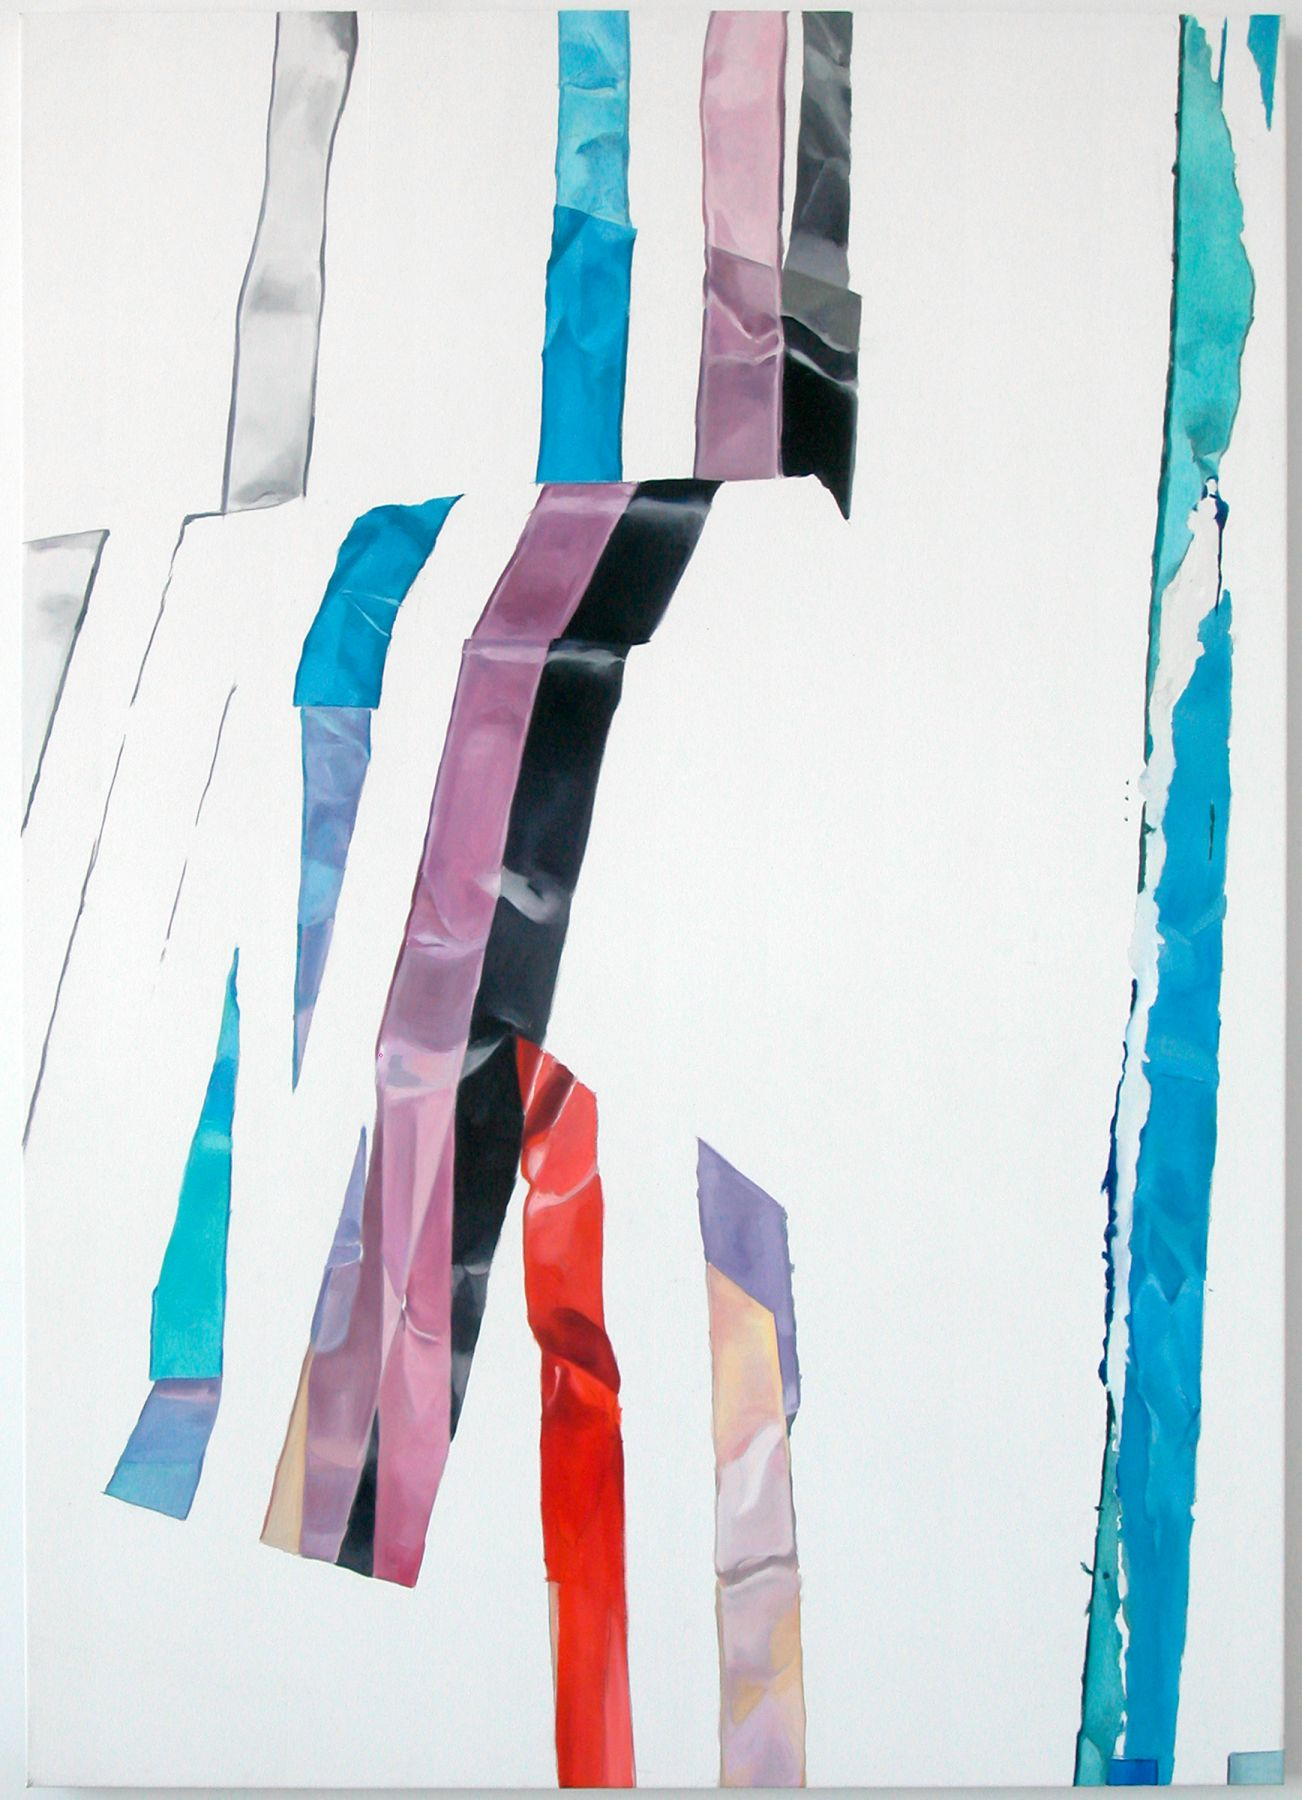 Alex Hubbard, Untitled, 2008, Oil on canvas, 62 x 45 inches